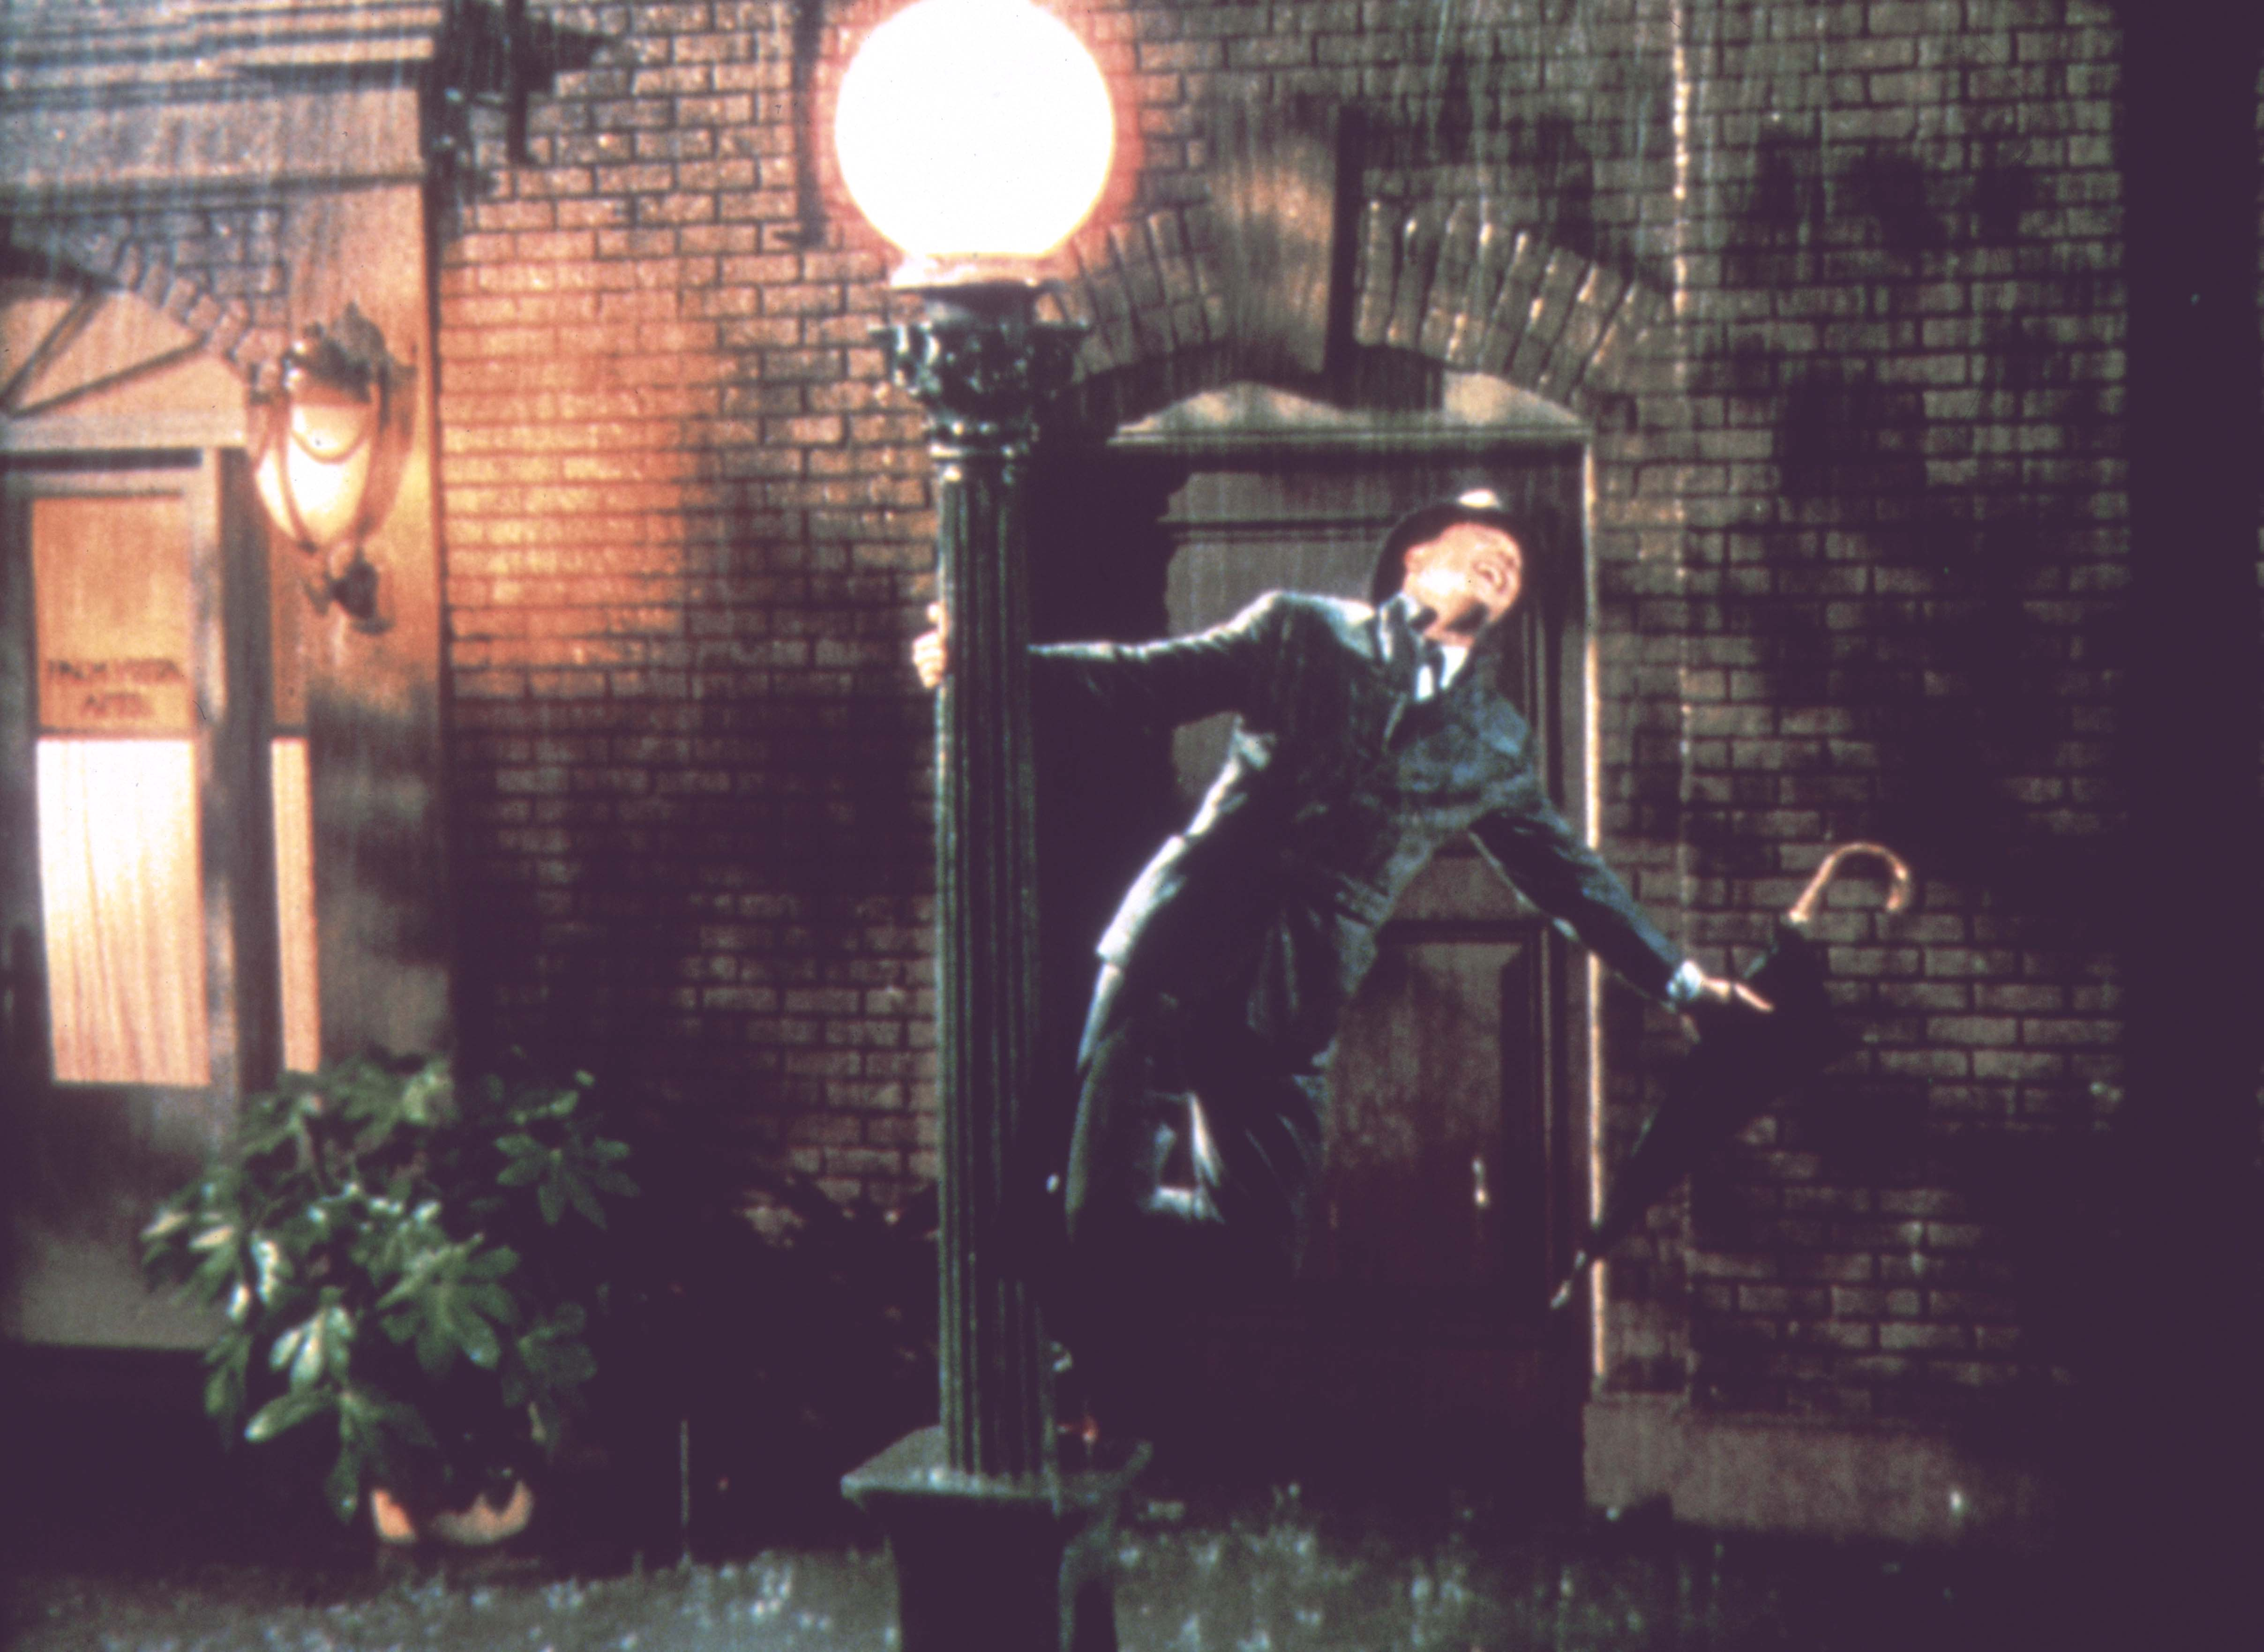 Singin' in the Rain ©1952 – All rights reserved. Courtesy Warner Bros. Home Entertainment, Inc.